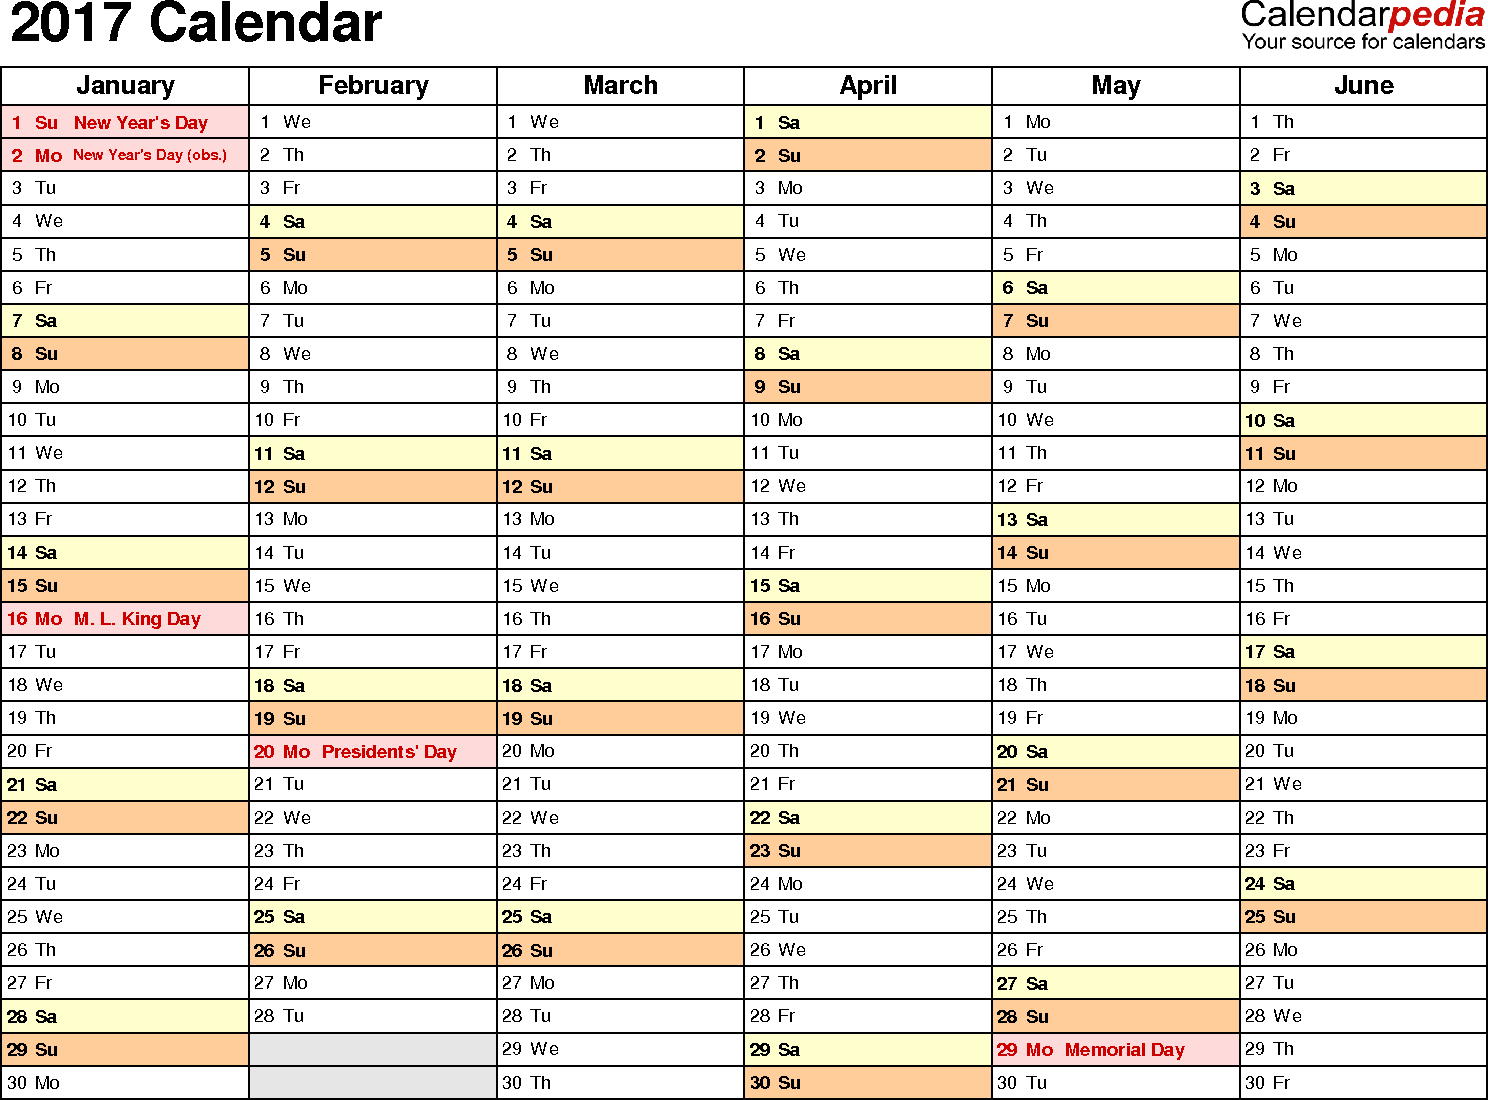 Ediblewildsus  Unique  Calendar  Download  Free Printable Excel Templates Xls With Lovable Template   Calendar For Excel Months Horizontally  Pages Landscape Orientation With Archaic How To Create A Macro Button In Excel  Also Online Excel Courses In Addition How To Unhide A Worksheet In Excel And What Is Pivot Table In Excel As Well As How To Remove Duplicates In Excel  Additionally Record Macro Excel From Calendarpediacom With Ediblewildsus  Lovable  Calendar  Download  Free Printable Excel Templates Xls With Archaic Template   Calendar For Excel Months Horizontally  Pages Landscape Orientation And Unique How To Create A Macro Button In Excel  Also Online Excel Courses In Addition How To Unhide A Worksheet In Excel From Calendarpediacom